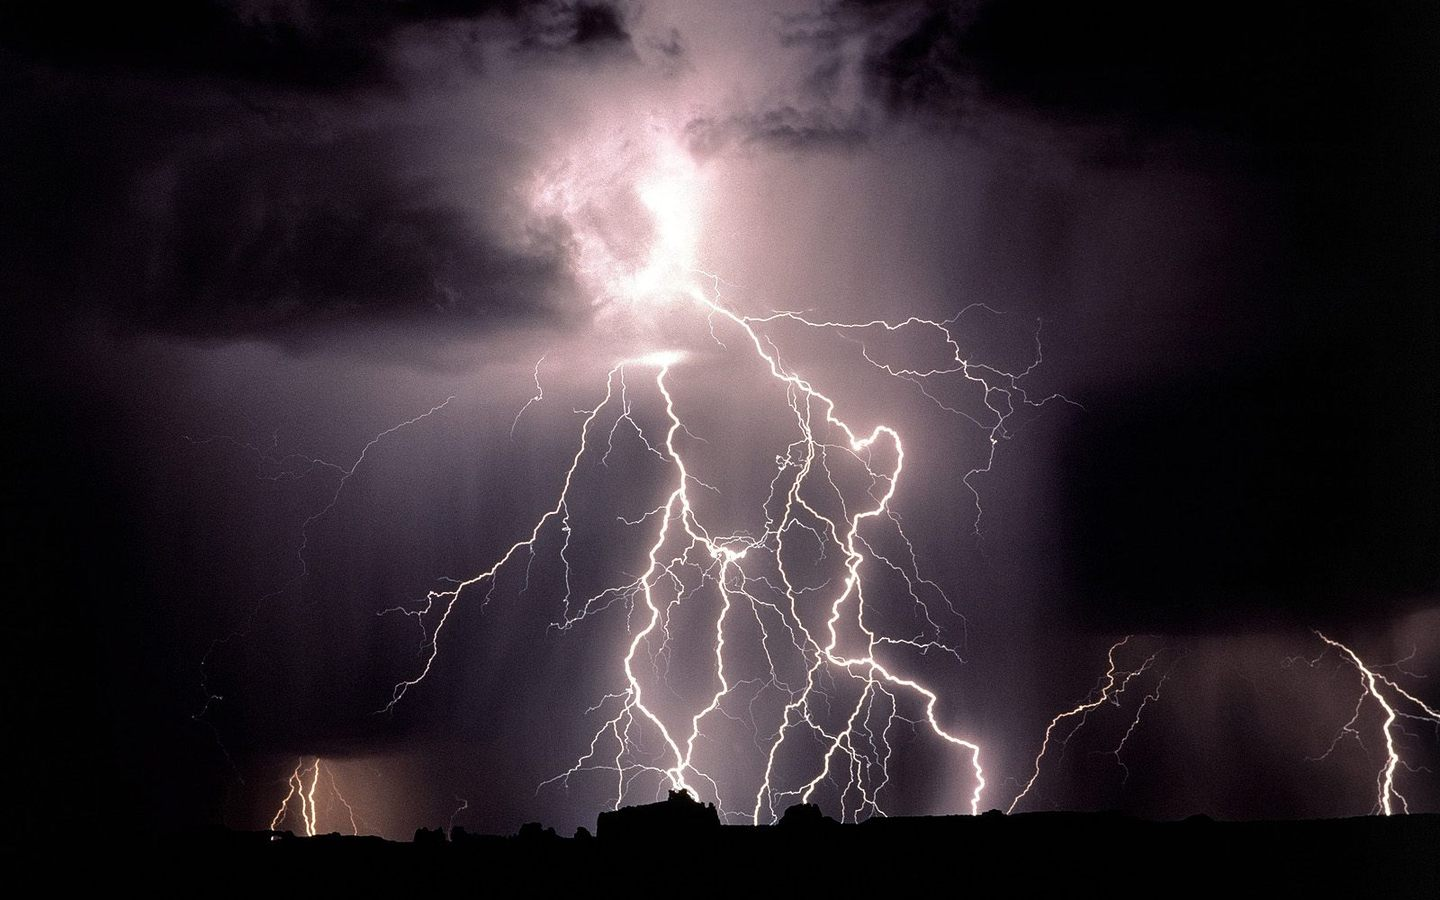 Researchers Were Able to Divert Lightning Bolts with Lasers